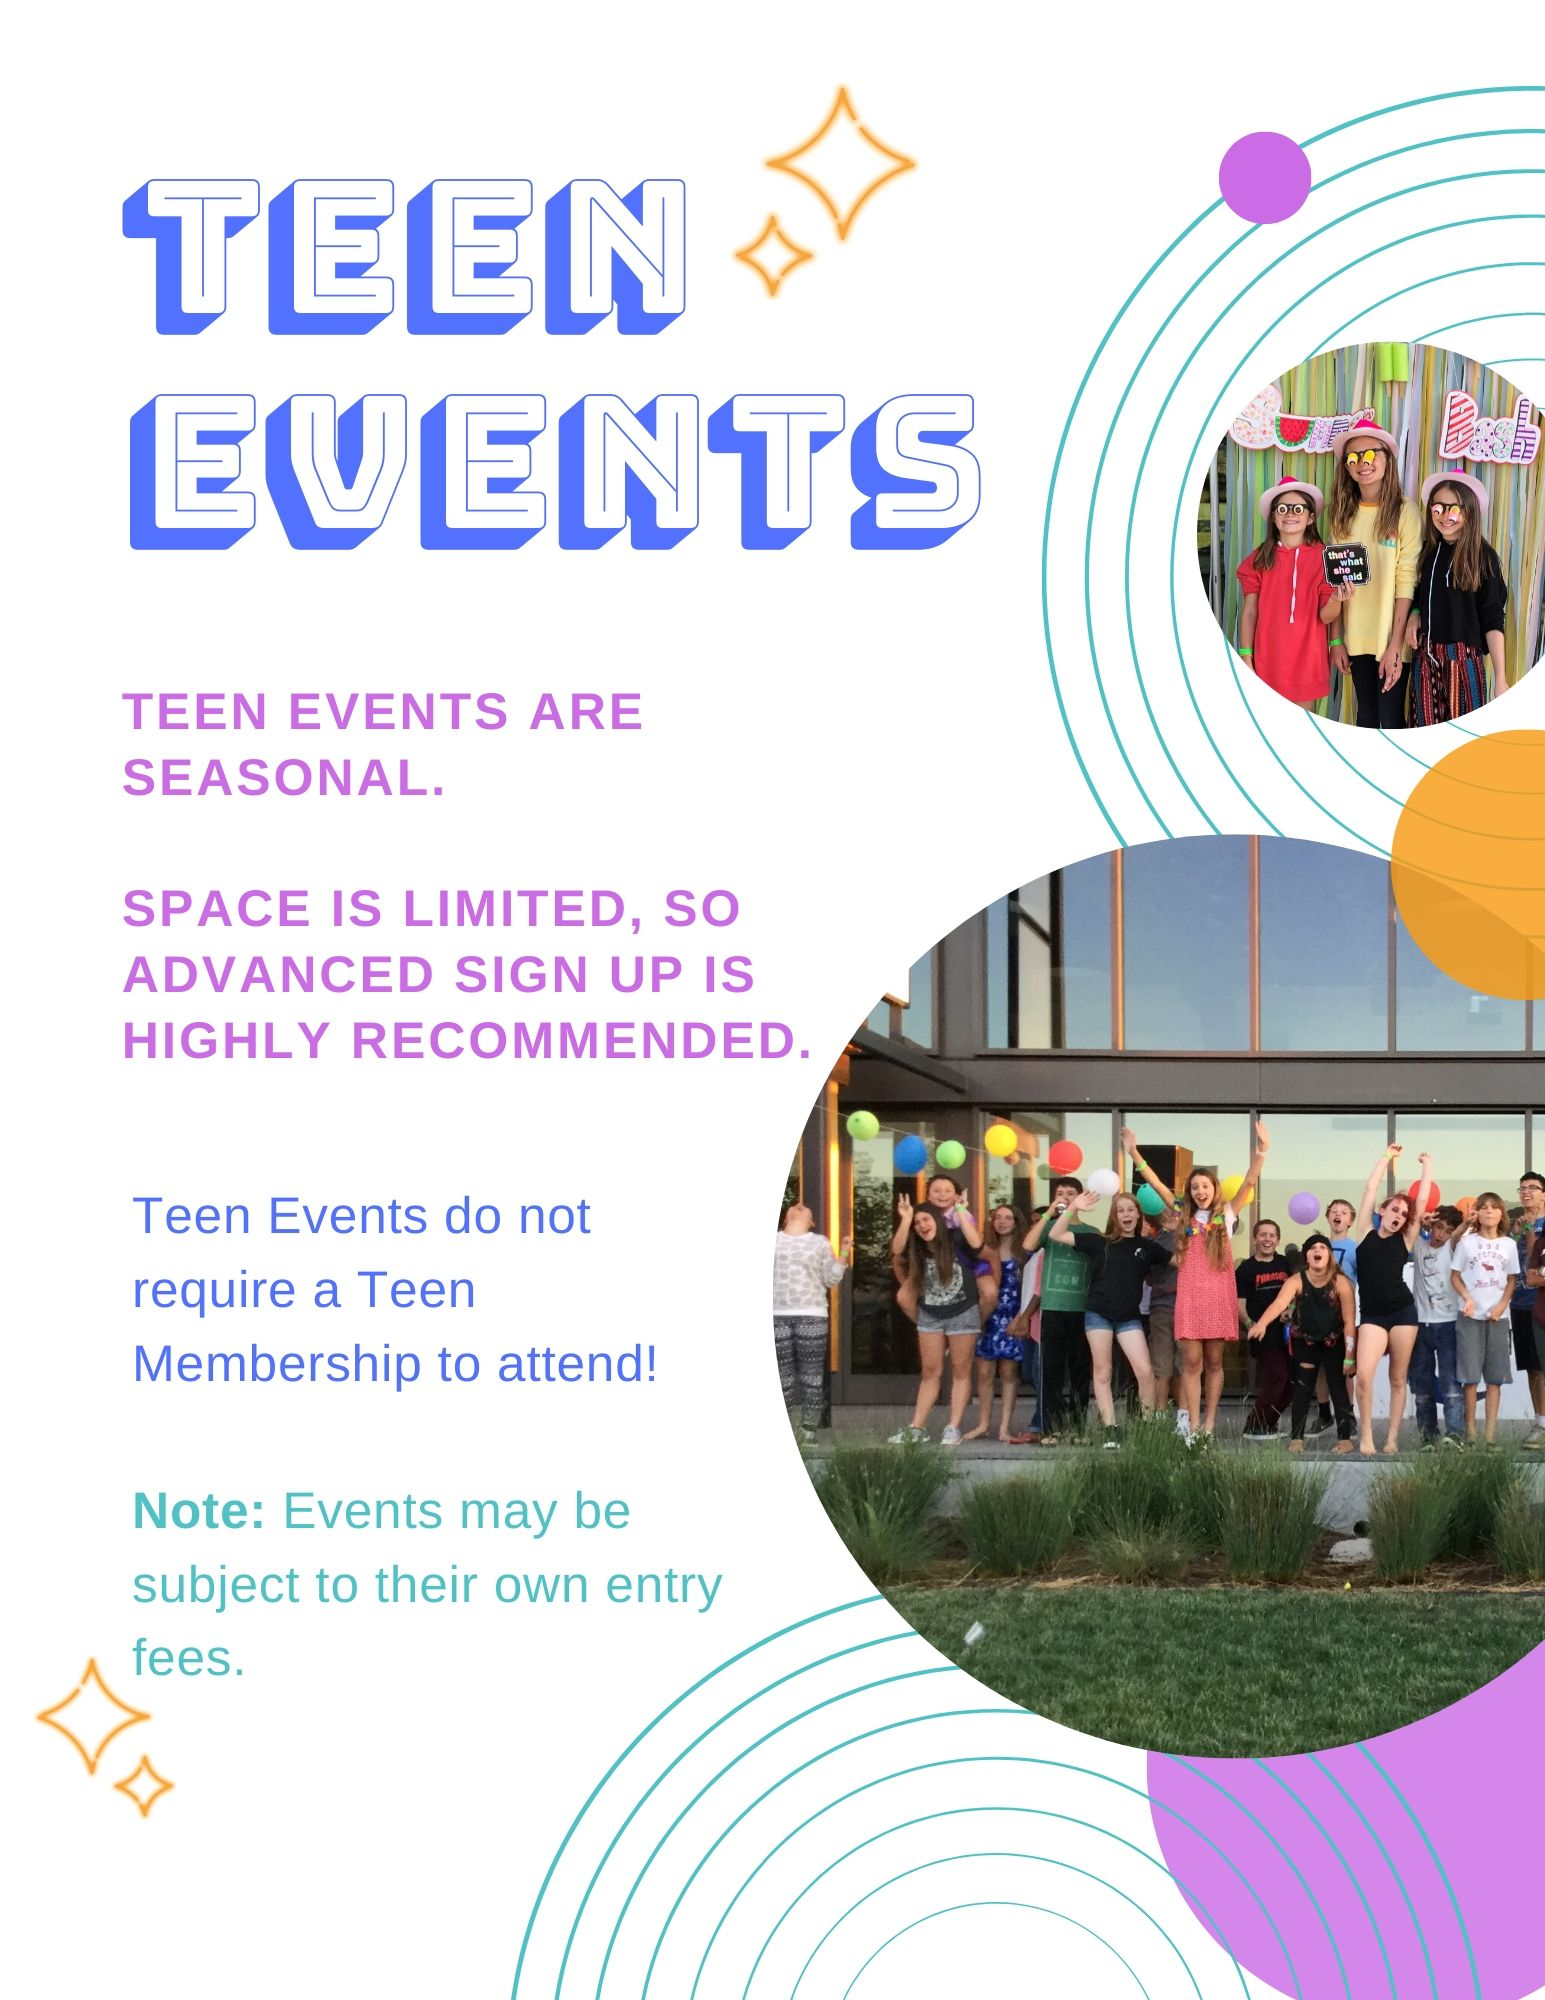 Teen Events offered seasonally